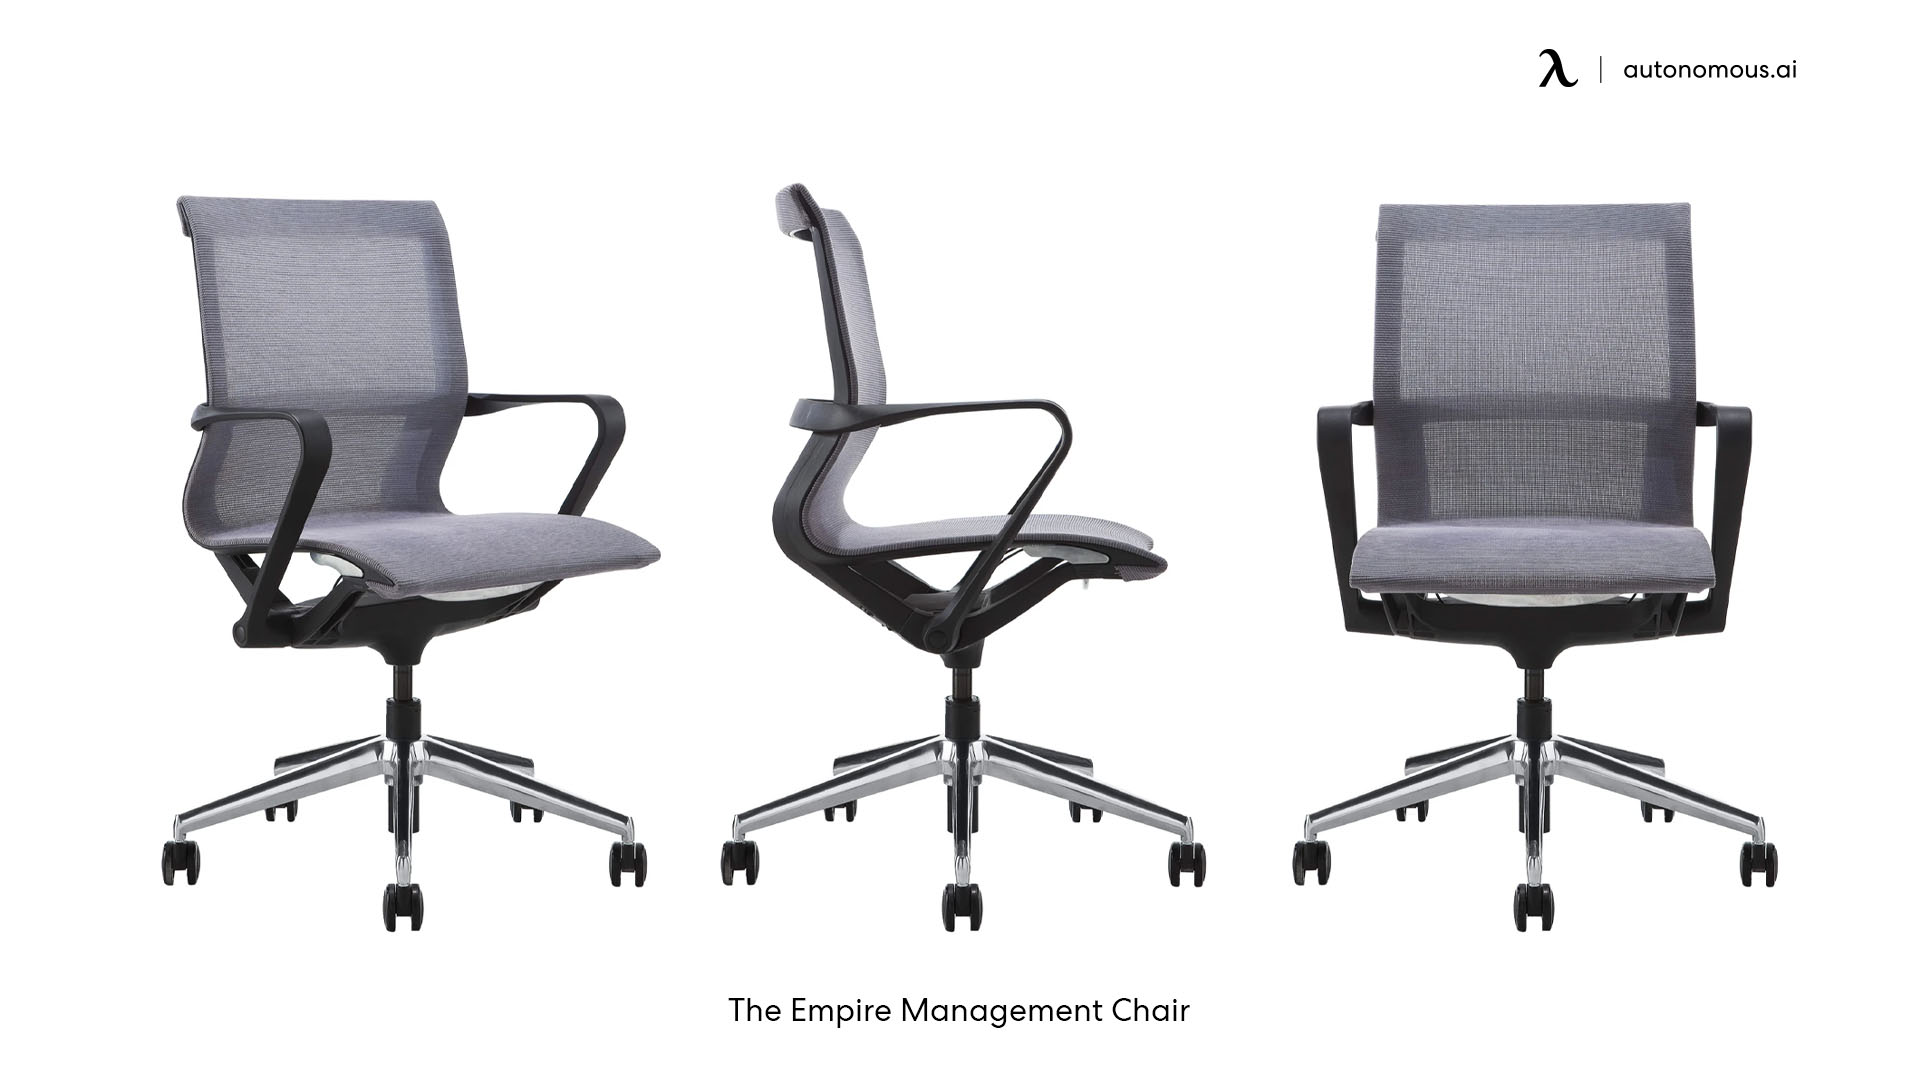 The Empire Management Chair